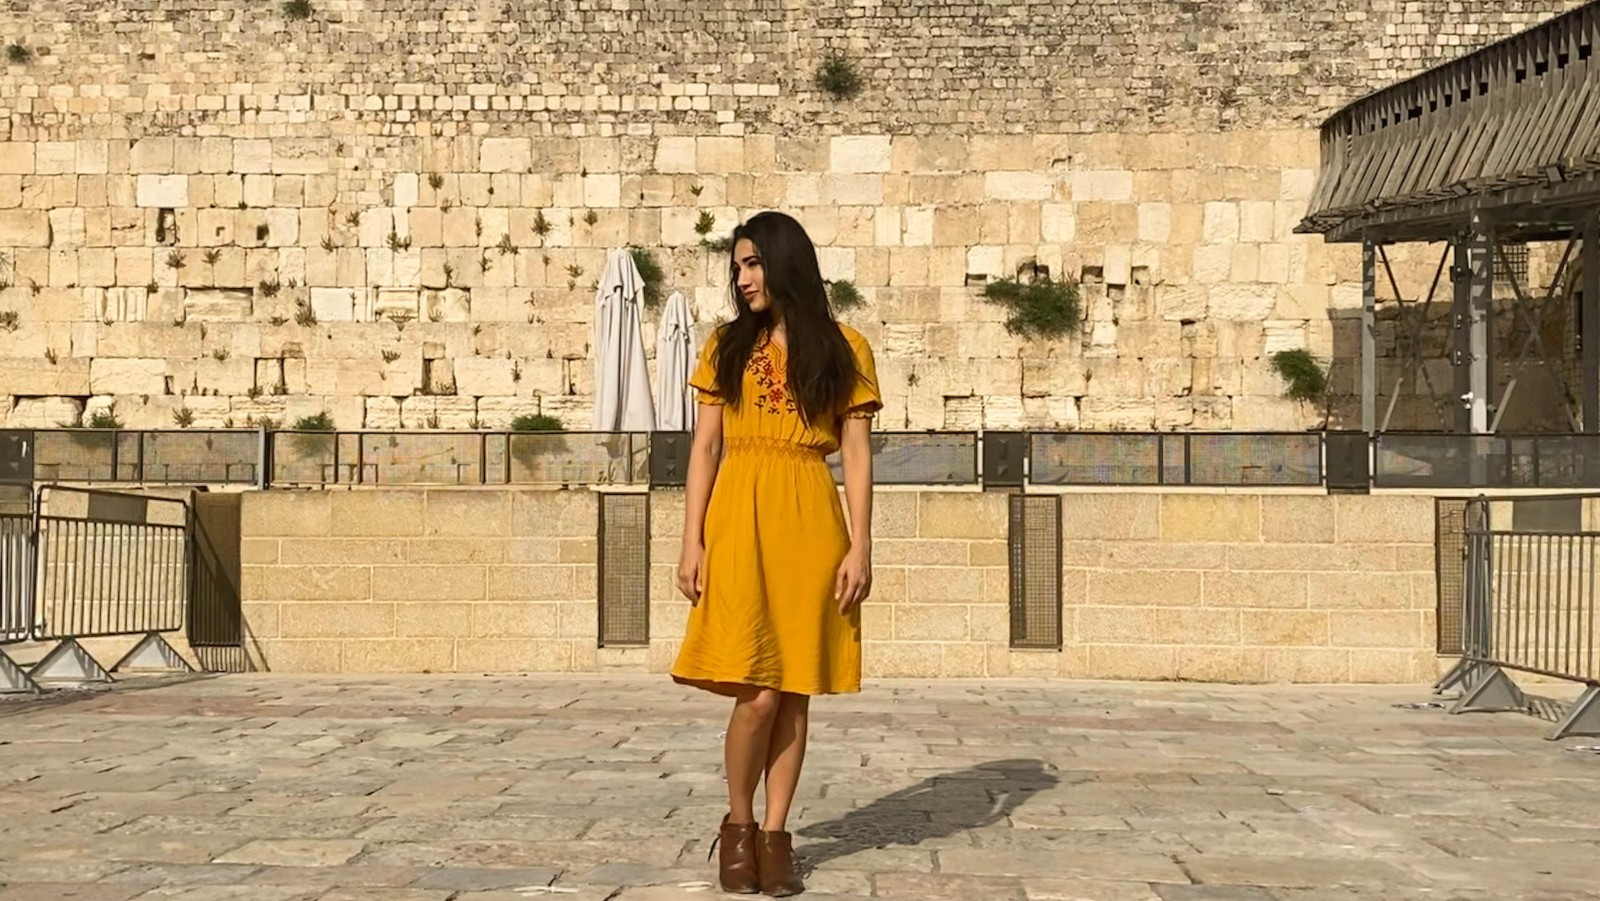 A vlogger named India whose passion is Israel